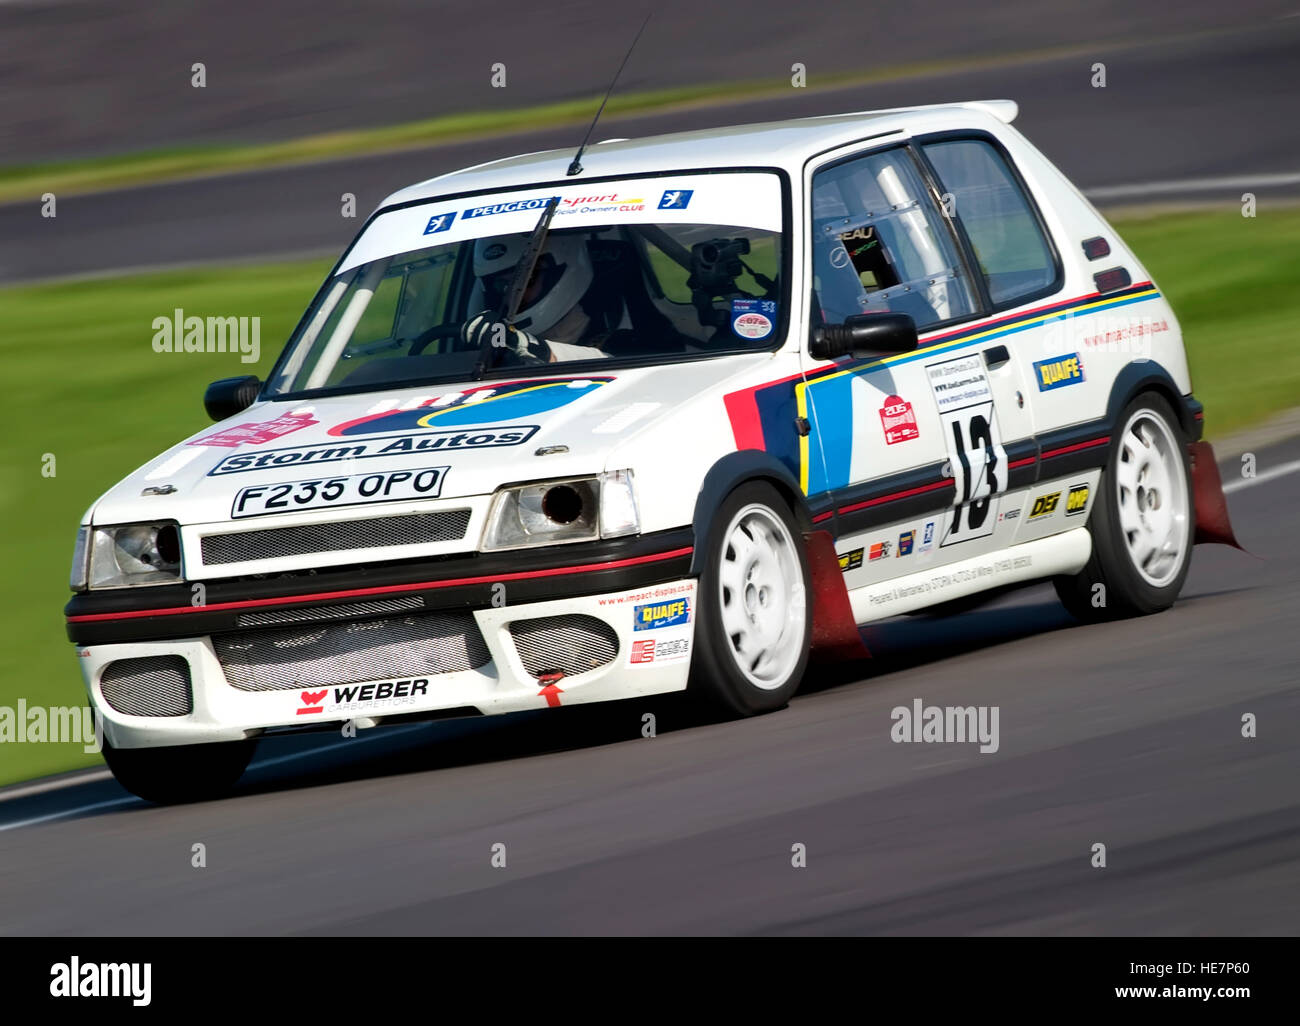 A Peugeot 205 1.6 GTI racing car at the Castle Combe Motor Racing ...